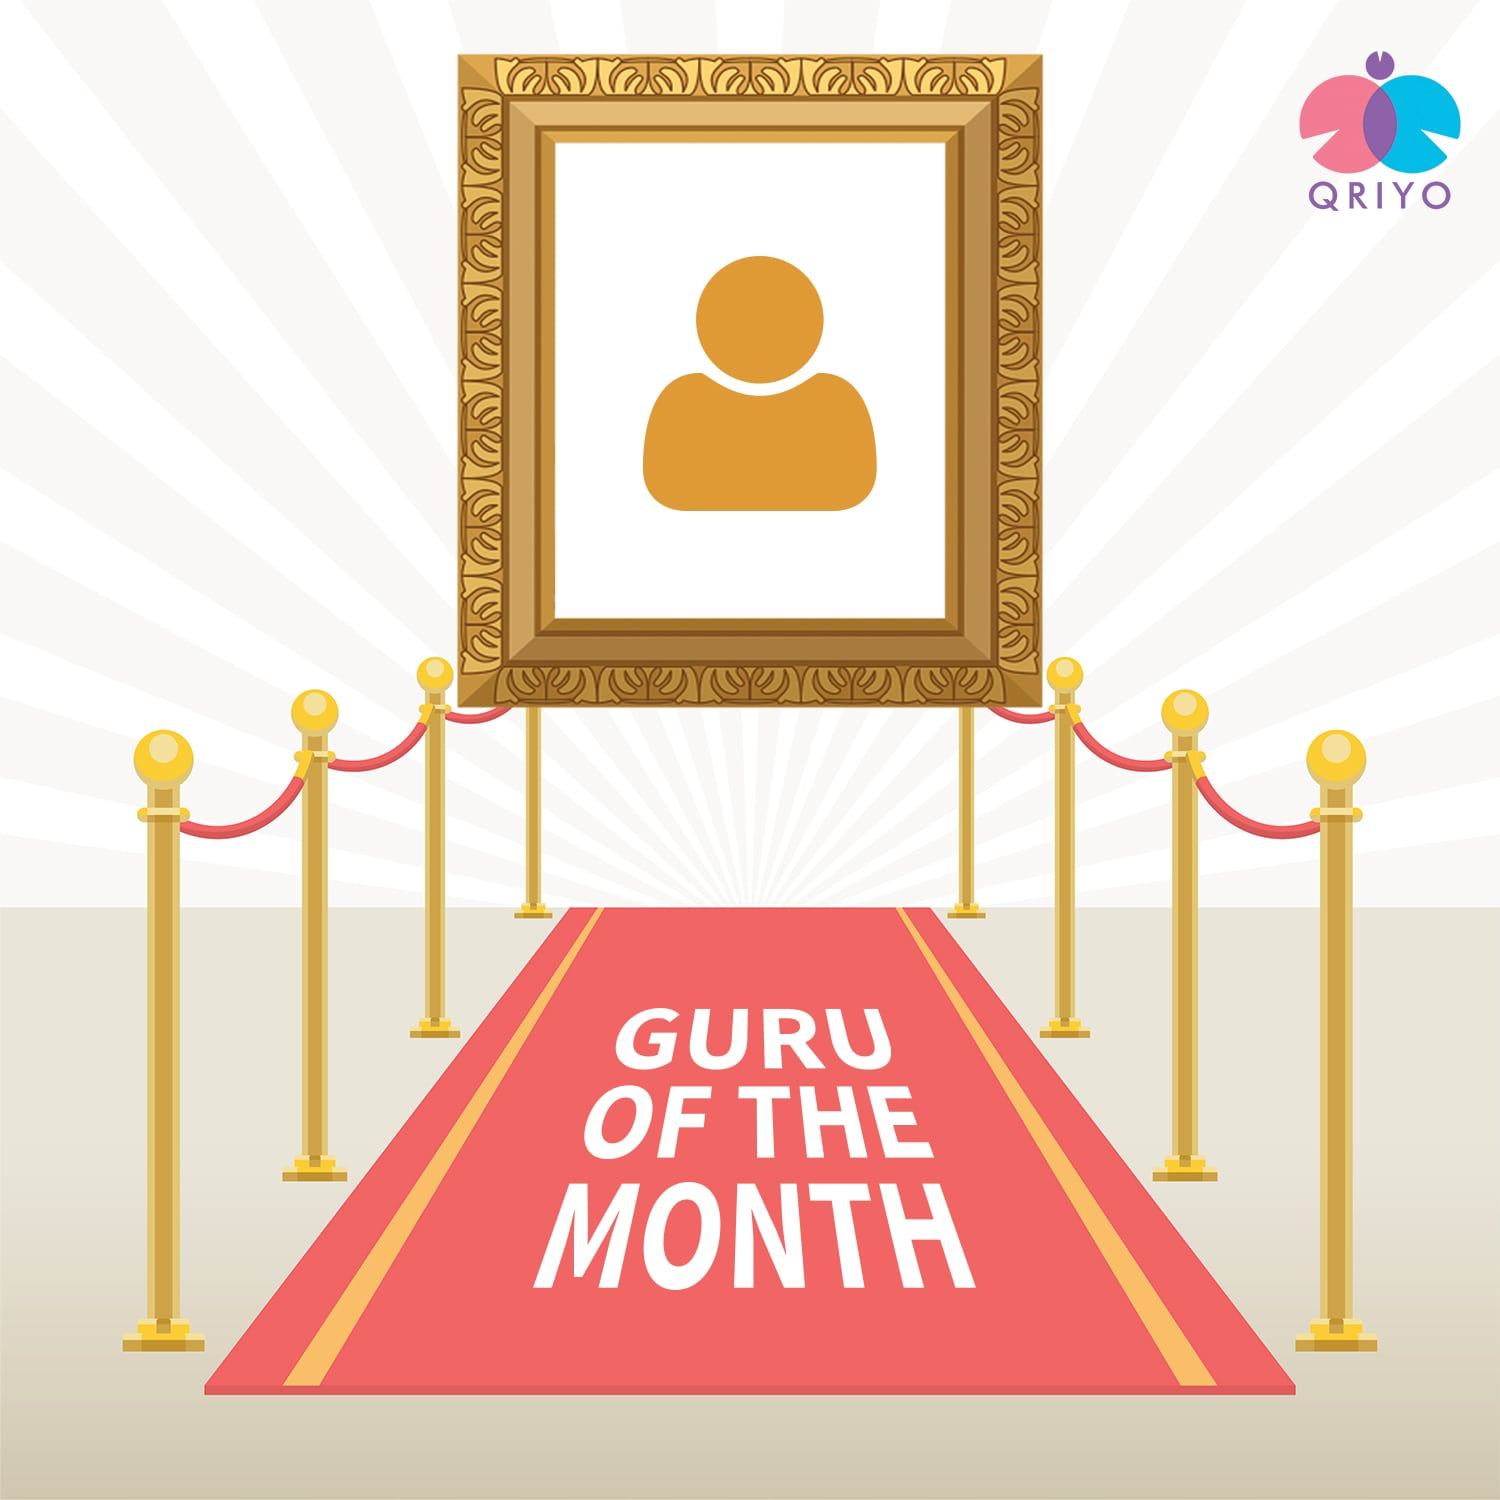 Qriyo Guru of the Month